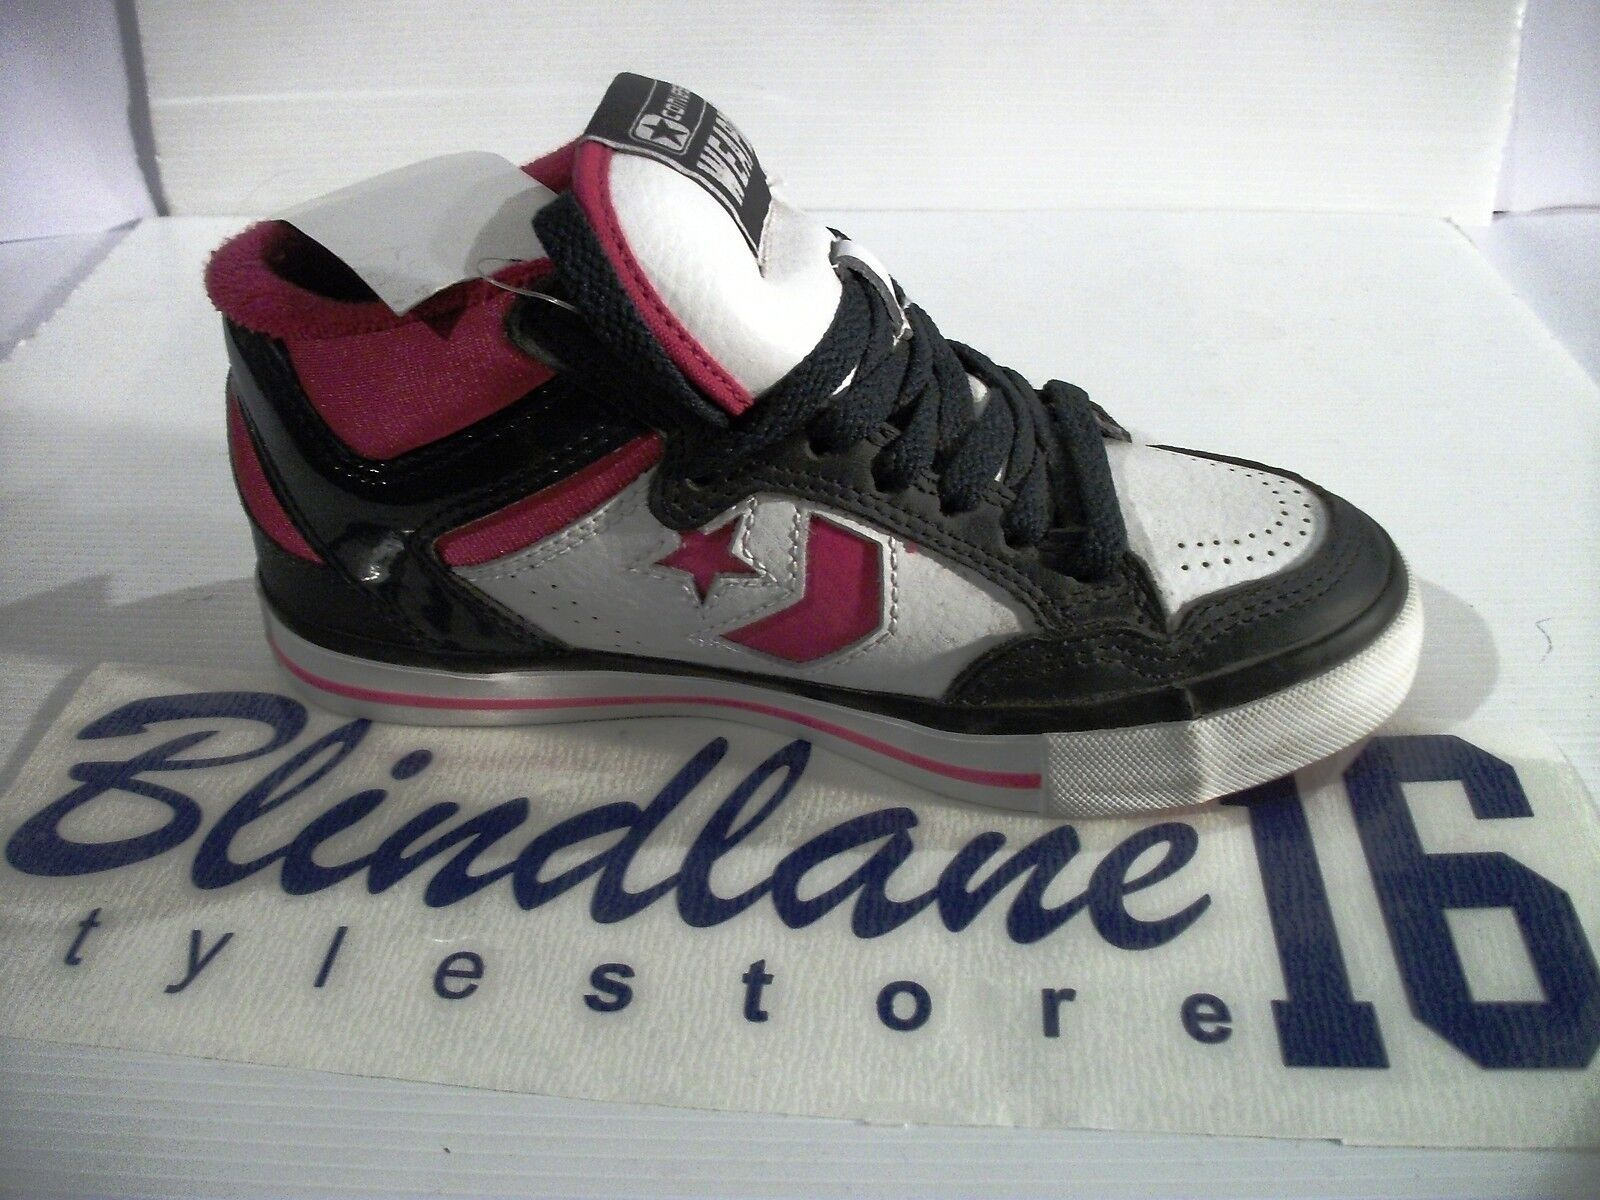 SCARPE CONVERSE PELLE LADY WEAPONS MID LEATHER PELLE CONVERSE NERE BIANCHE 518797 EUR N 36 a7541a